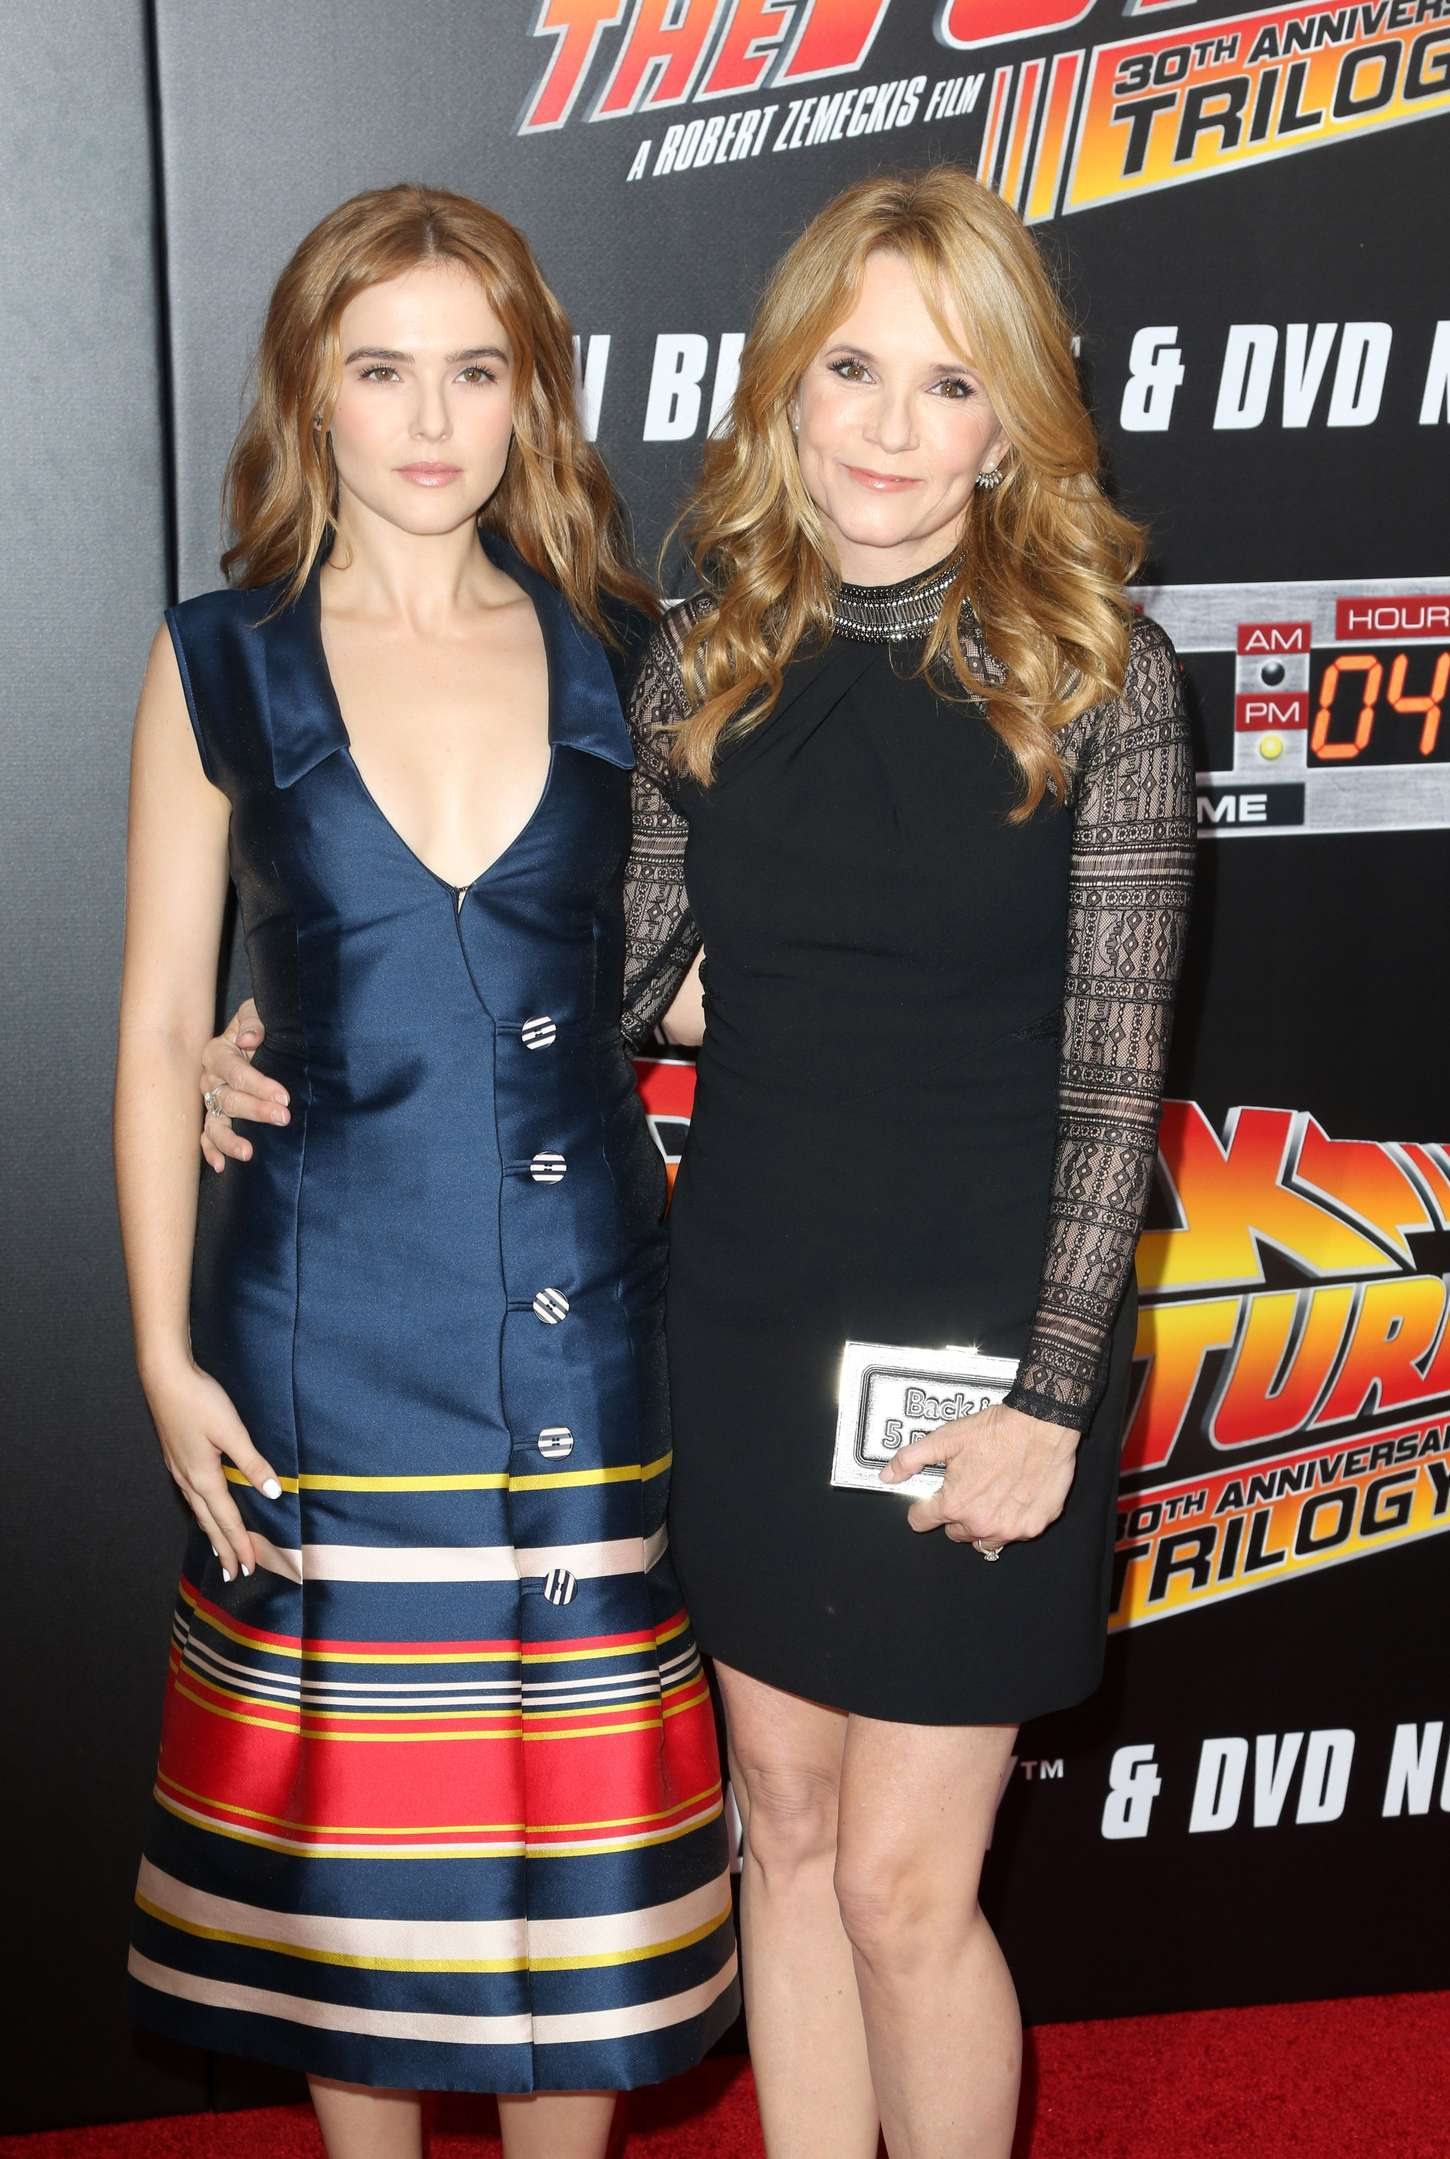 Zoey Deutch 2015 : Zoey Deutch and Lea Thompson: Back To The Future NY Screening -02